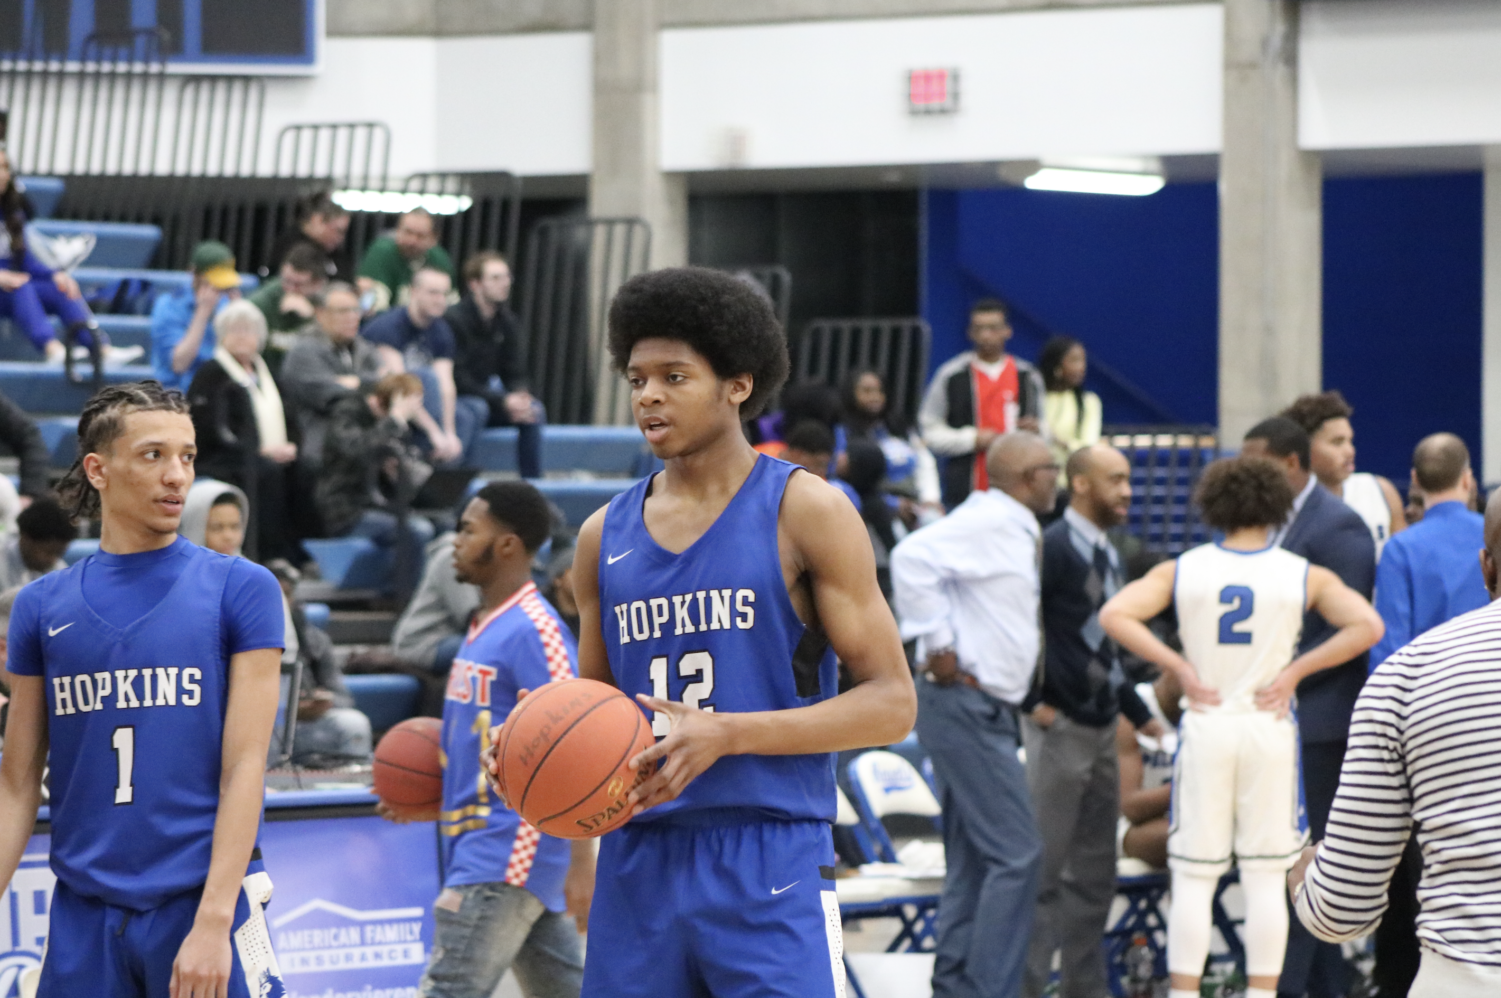 Kerwin Walton, junior, in a  win against Minneapolis North. The Royals are the one seed in their section.